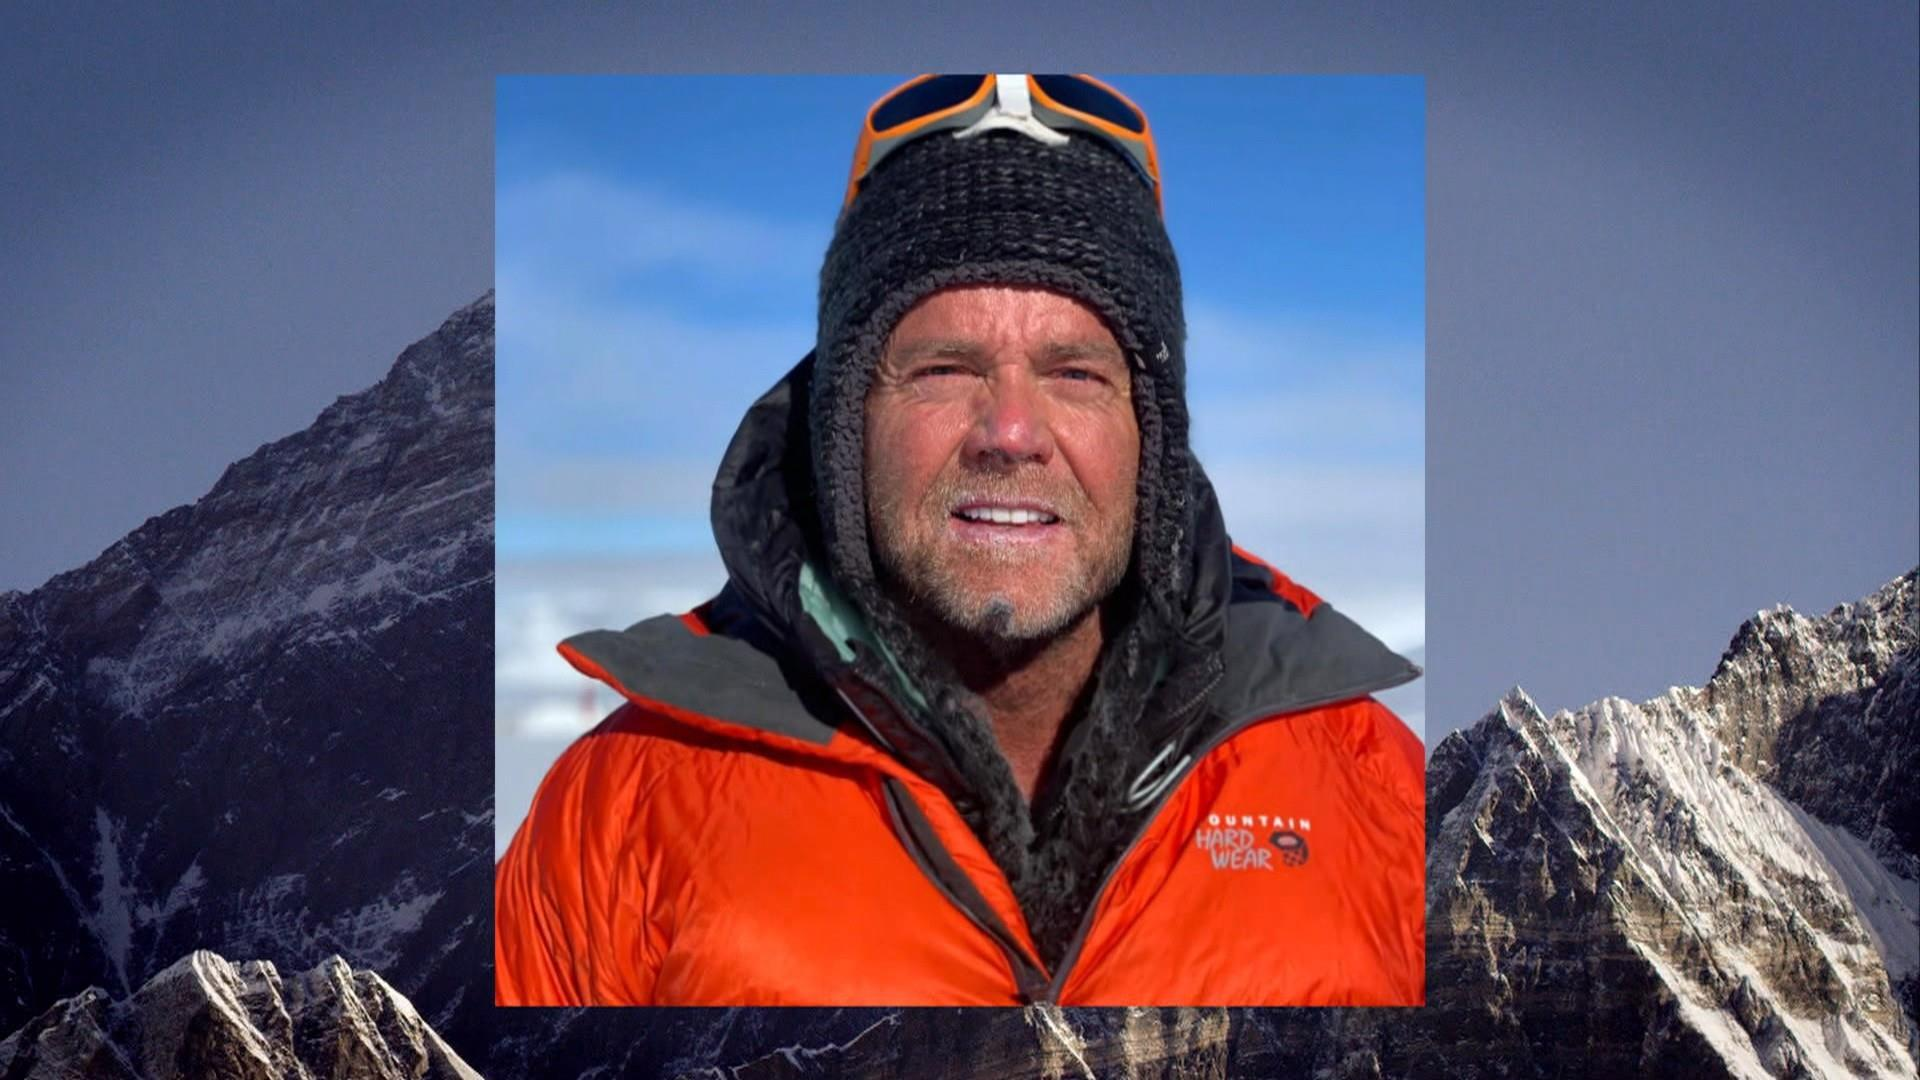 Family remembers American climber who died on Mount Everest